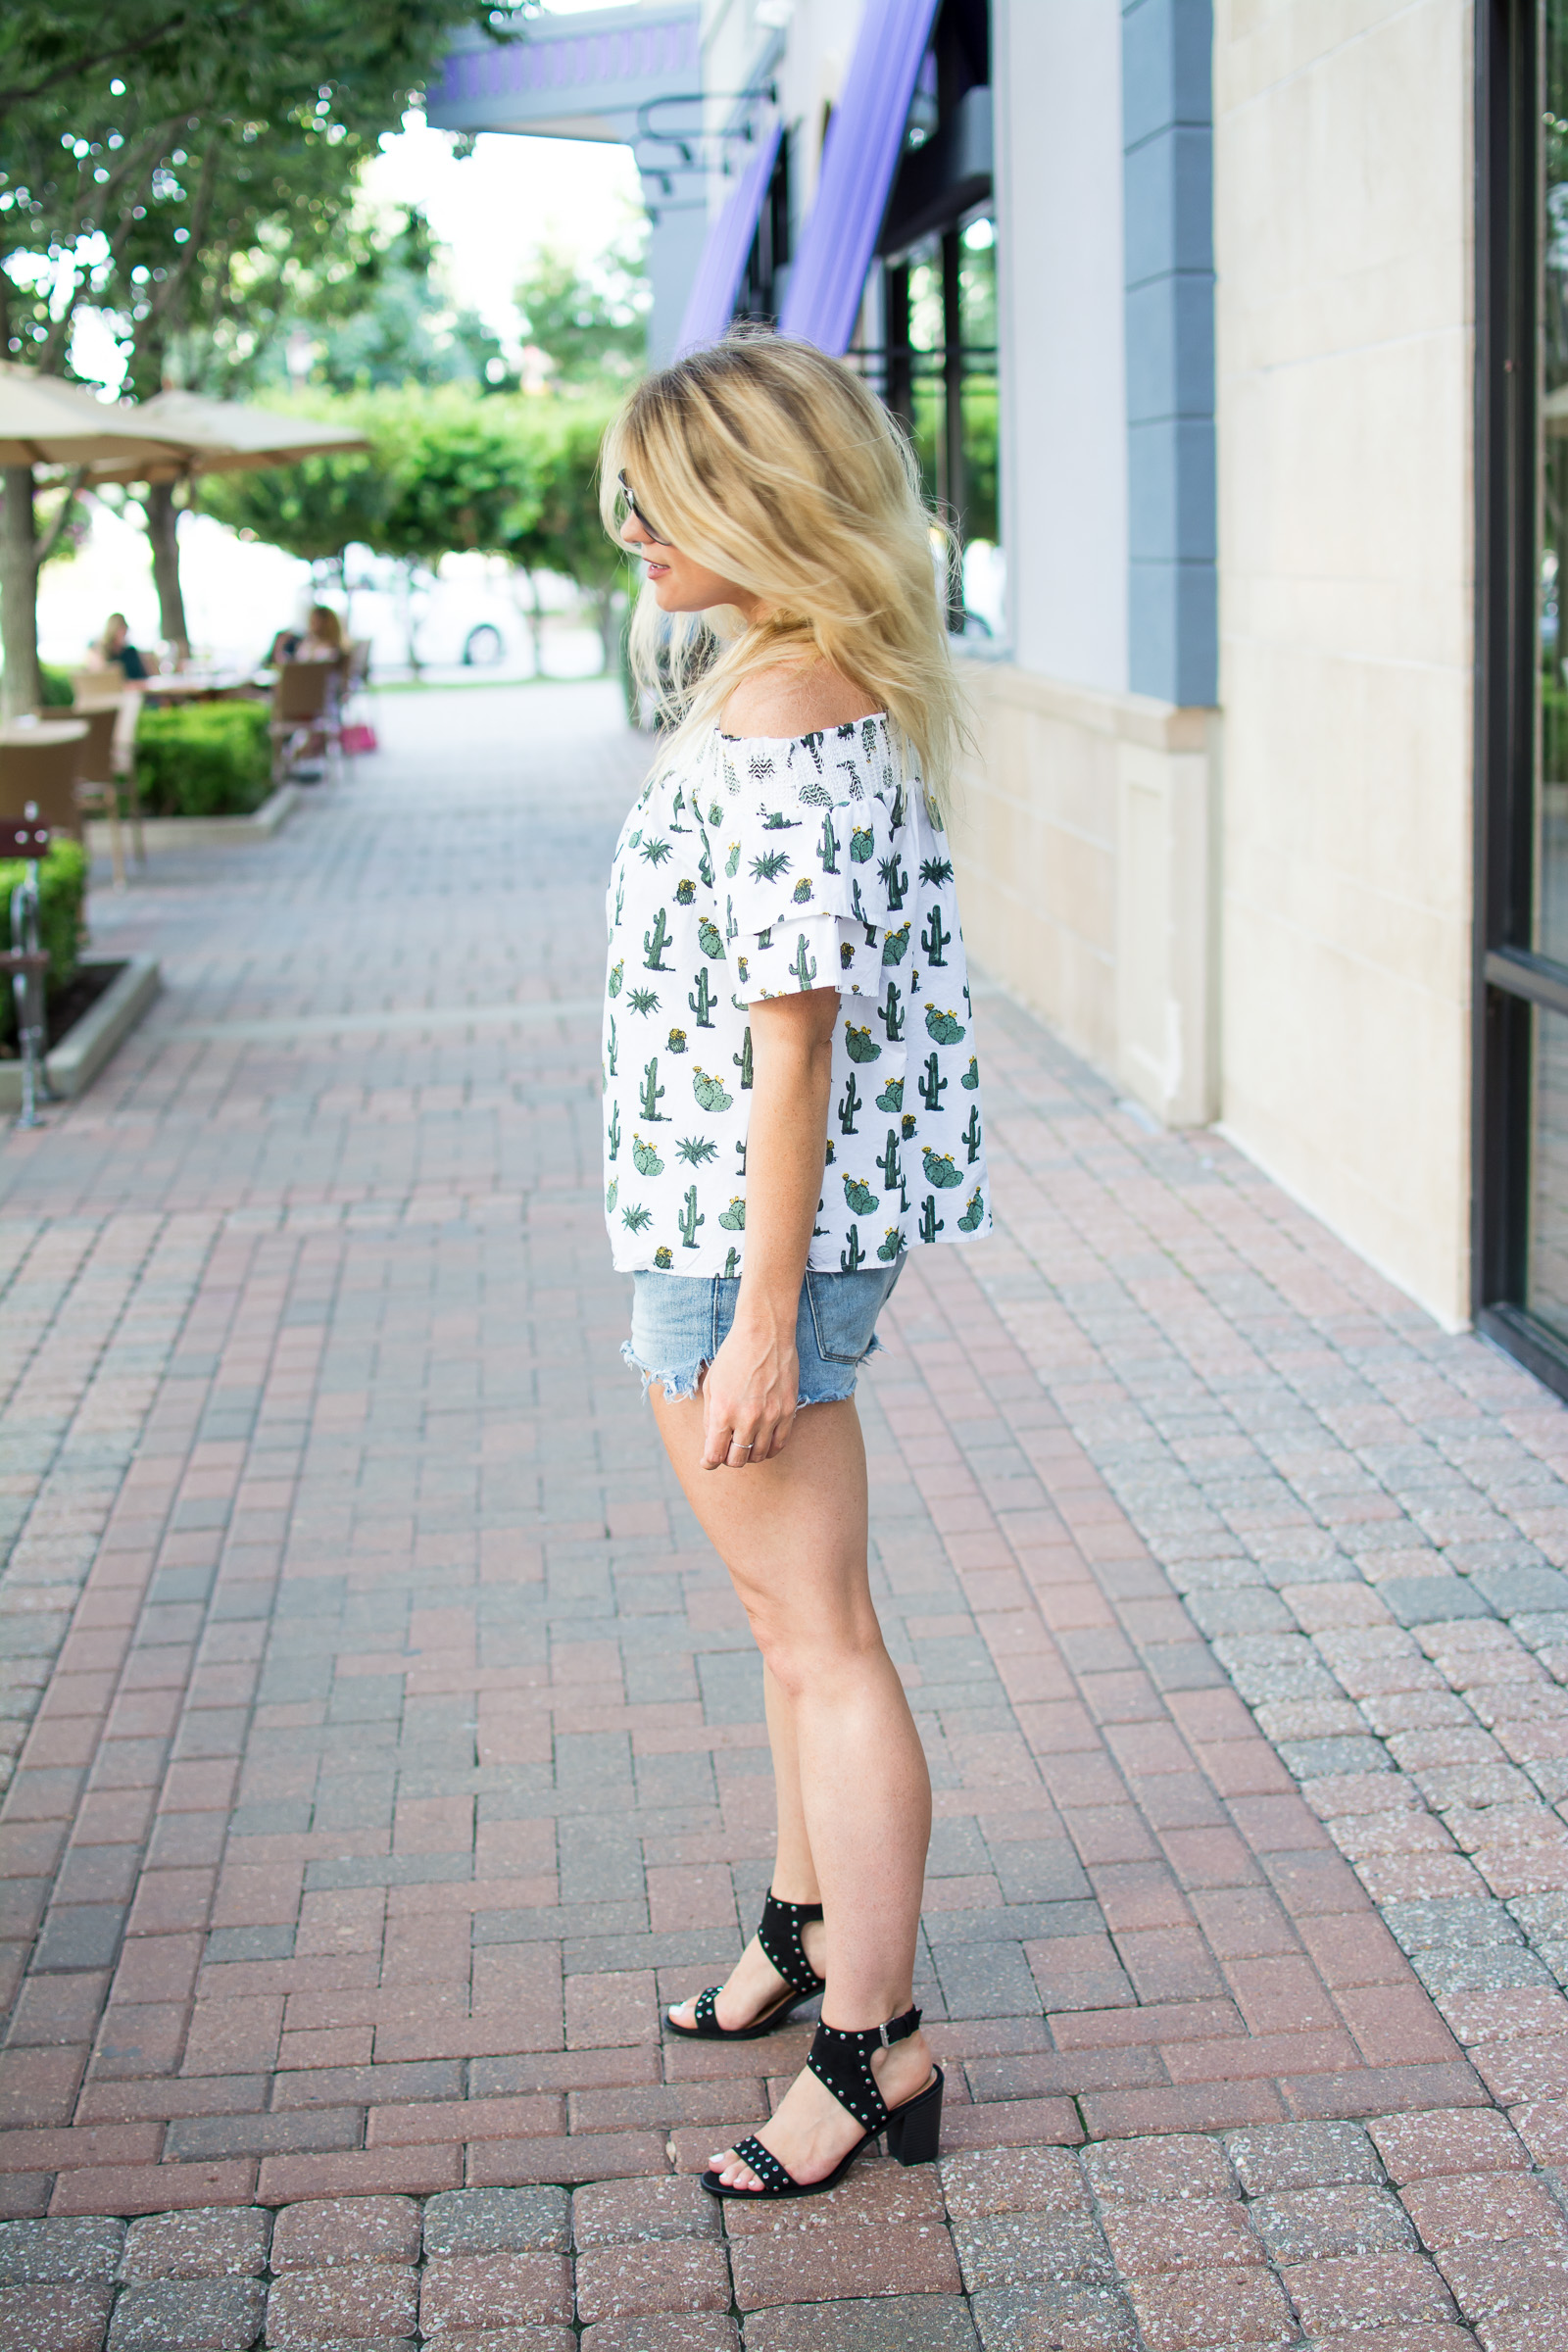 Cactus Off-the-Shoulder Top + Studded Sandals. | Ashley from Le Stylo Rouge